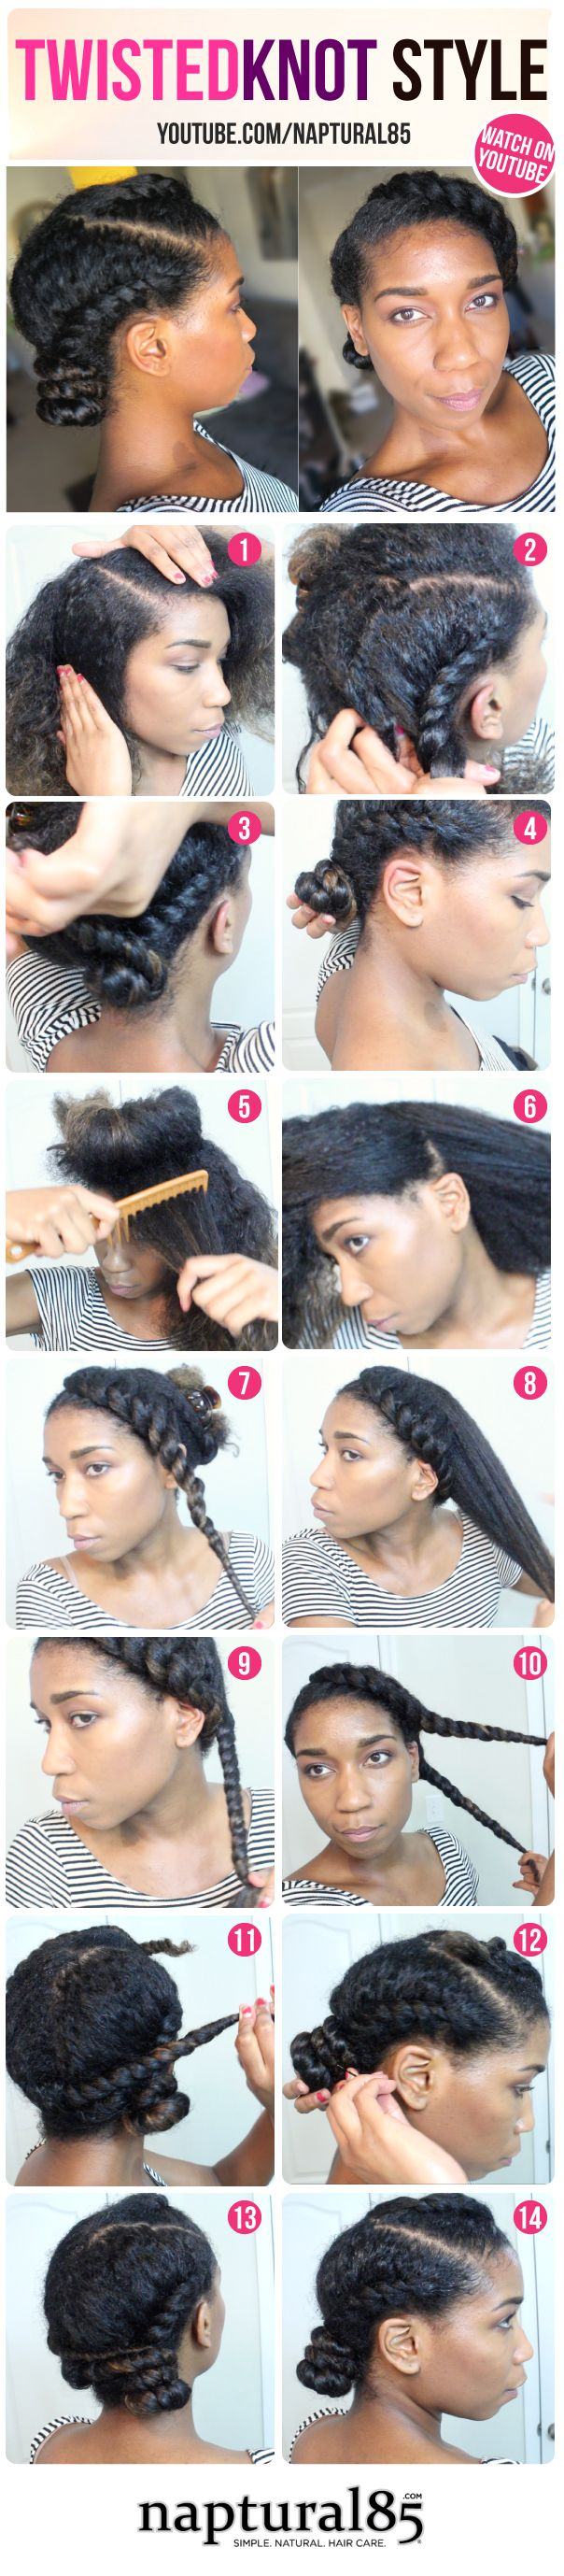 #Naptural85 - #Natural #Hair Care Tips and then visit www.politejourney.com